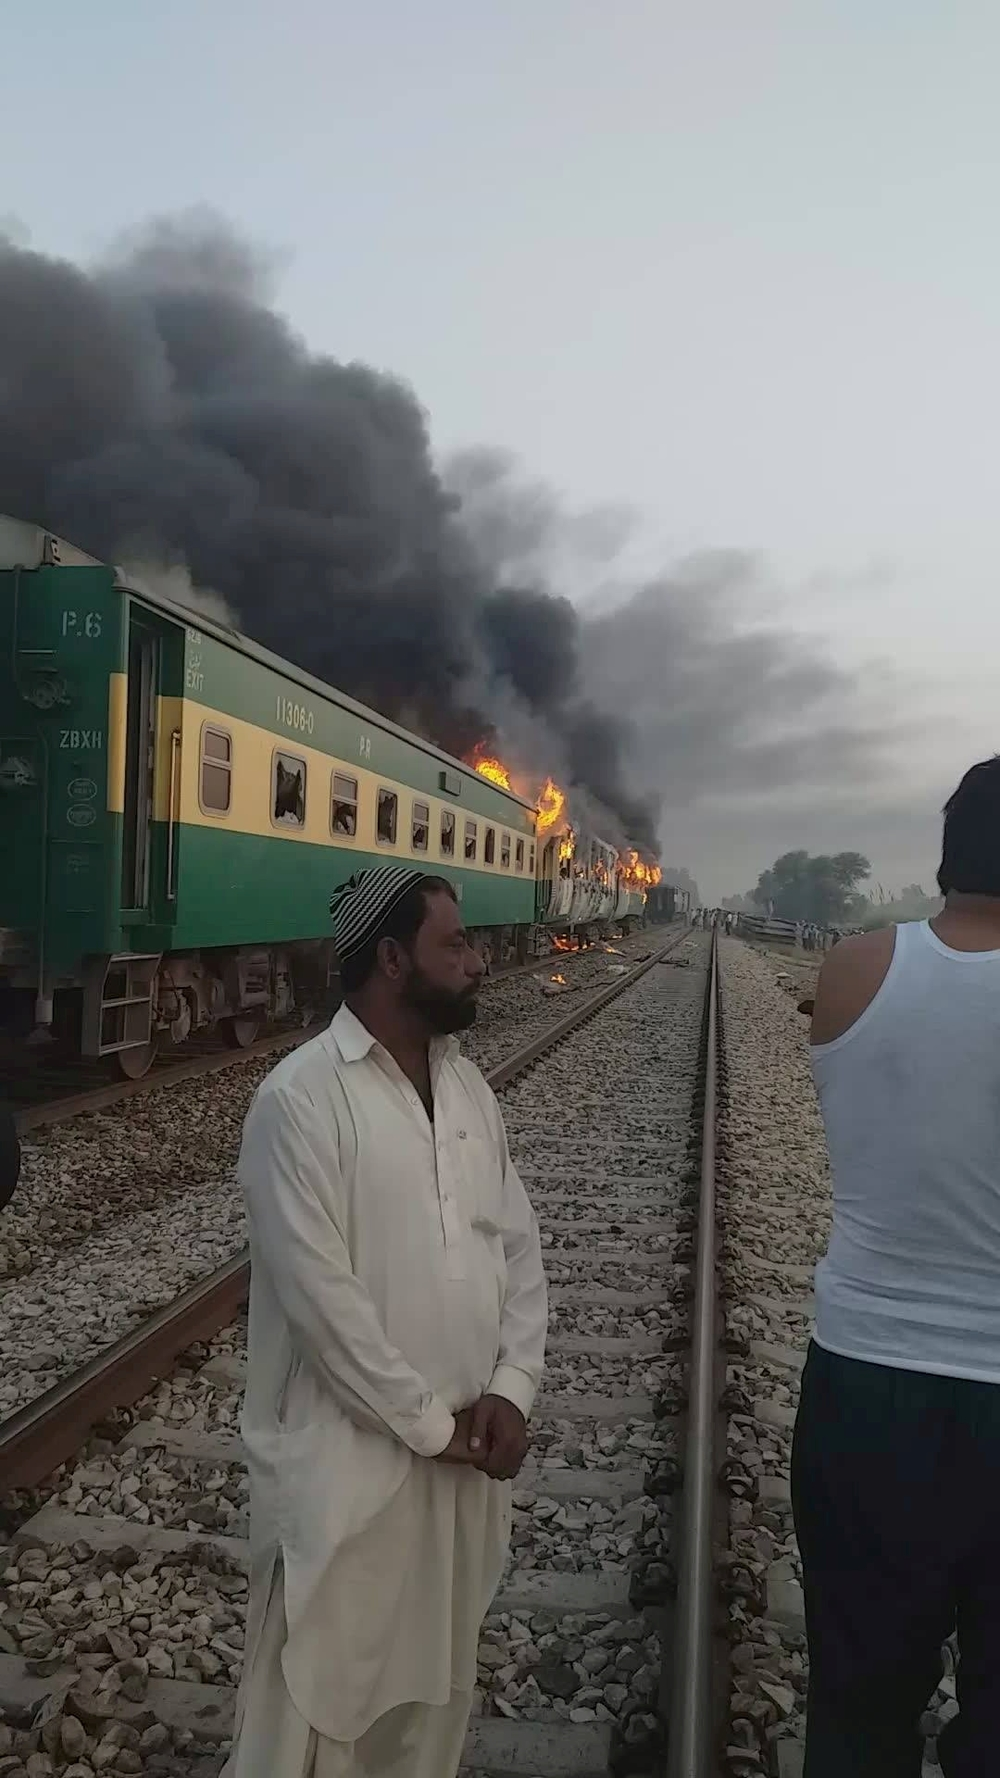 A man stands in front of a burning train after a gas canister passengers were using to cook breakfast exploded, near the town of Rahim Yar Khan